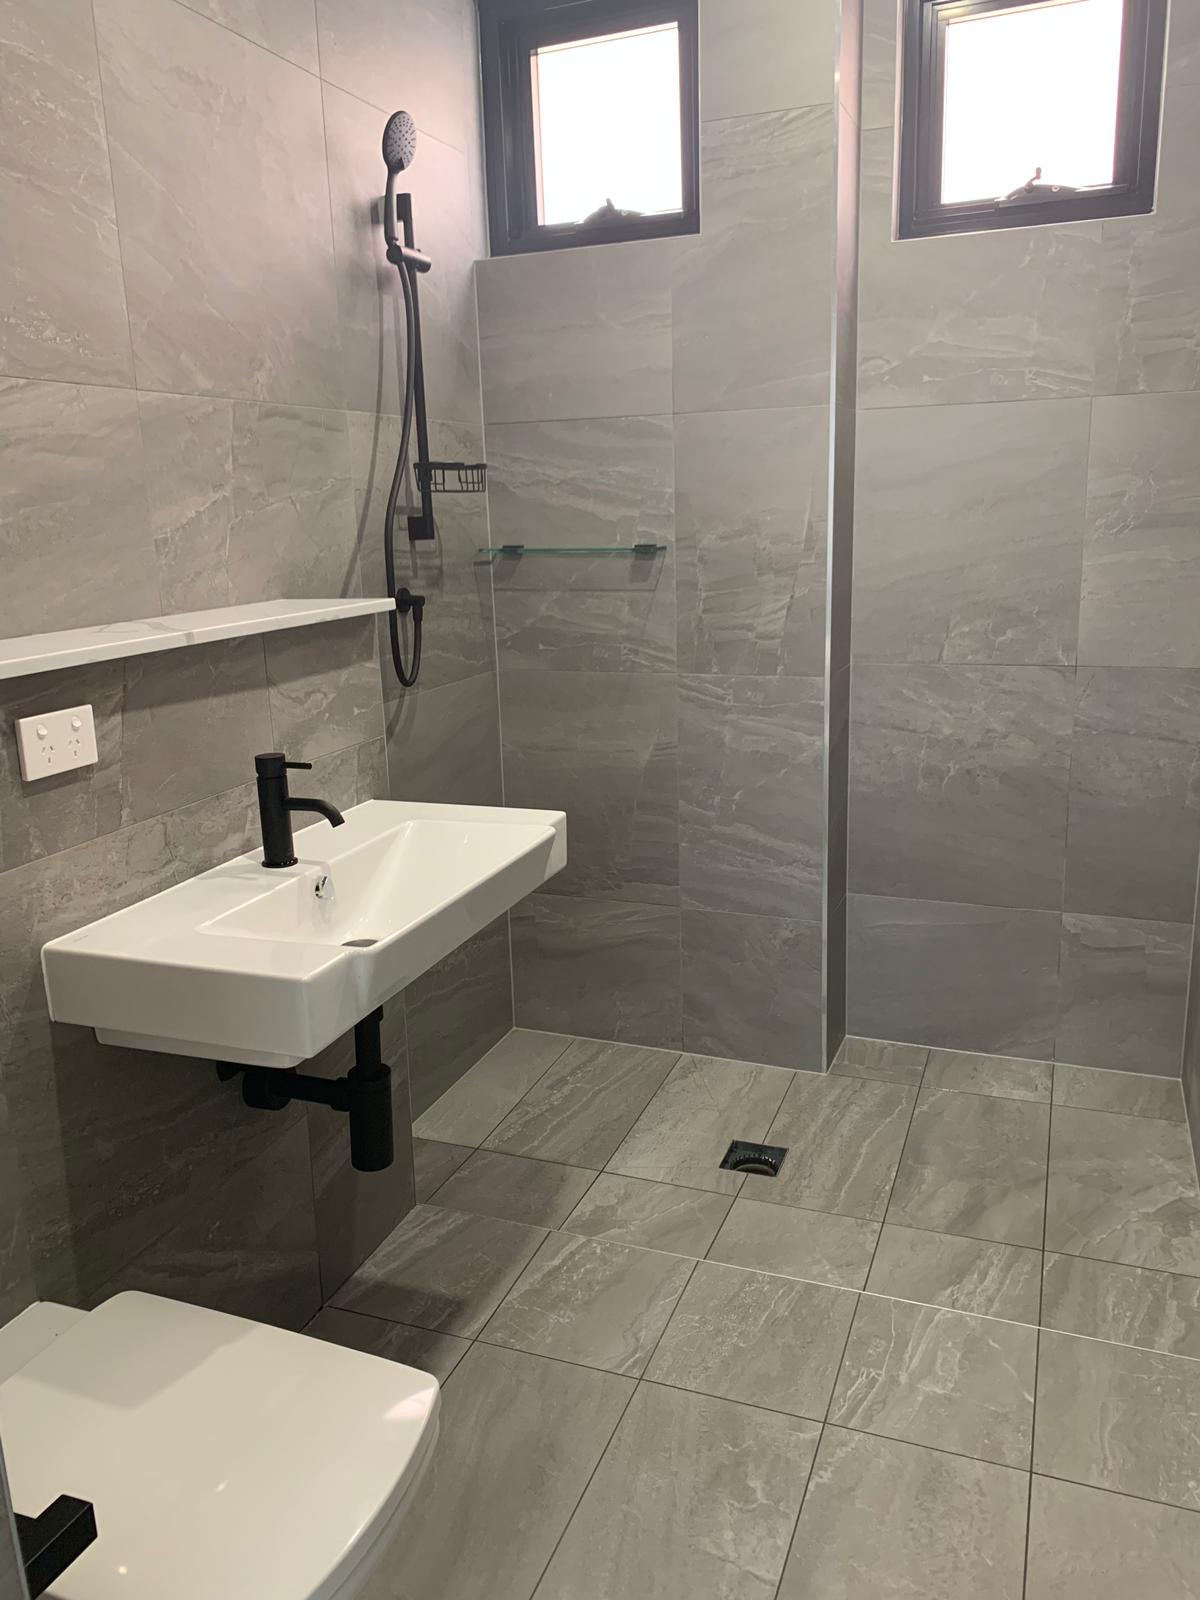 Bathroom basin area with Warmtech Inscreed heating system